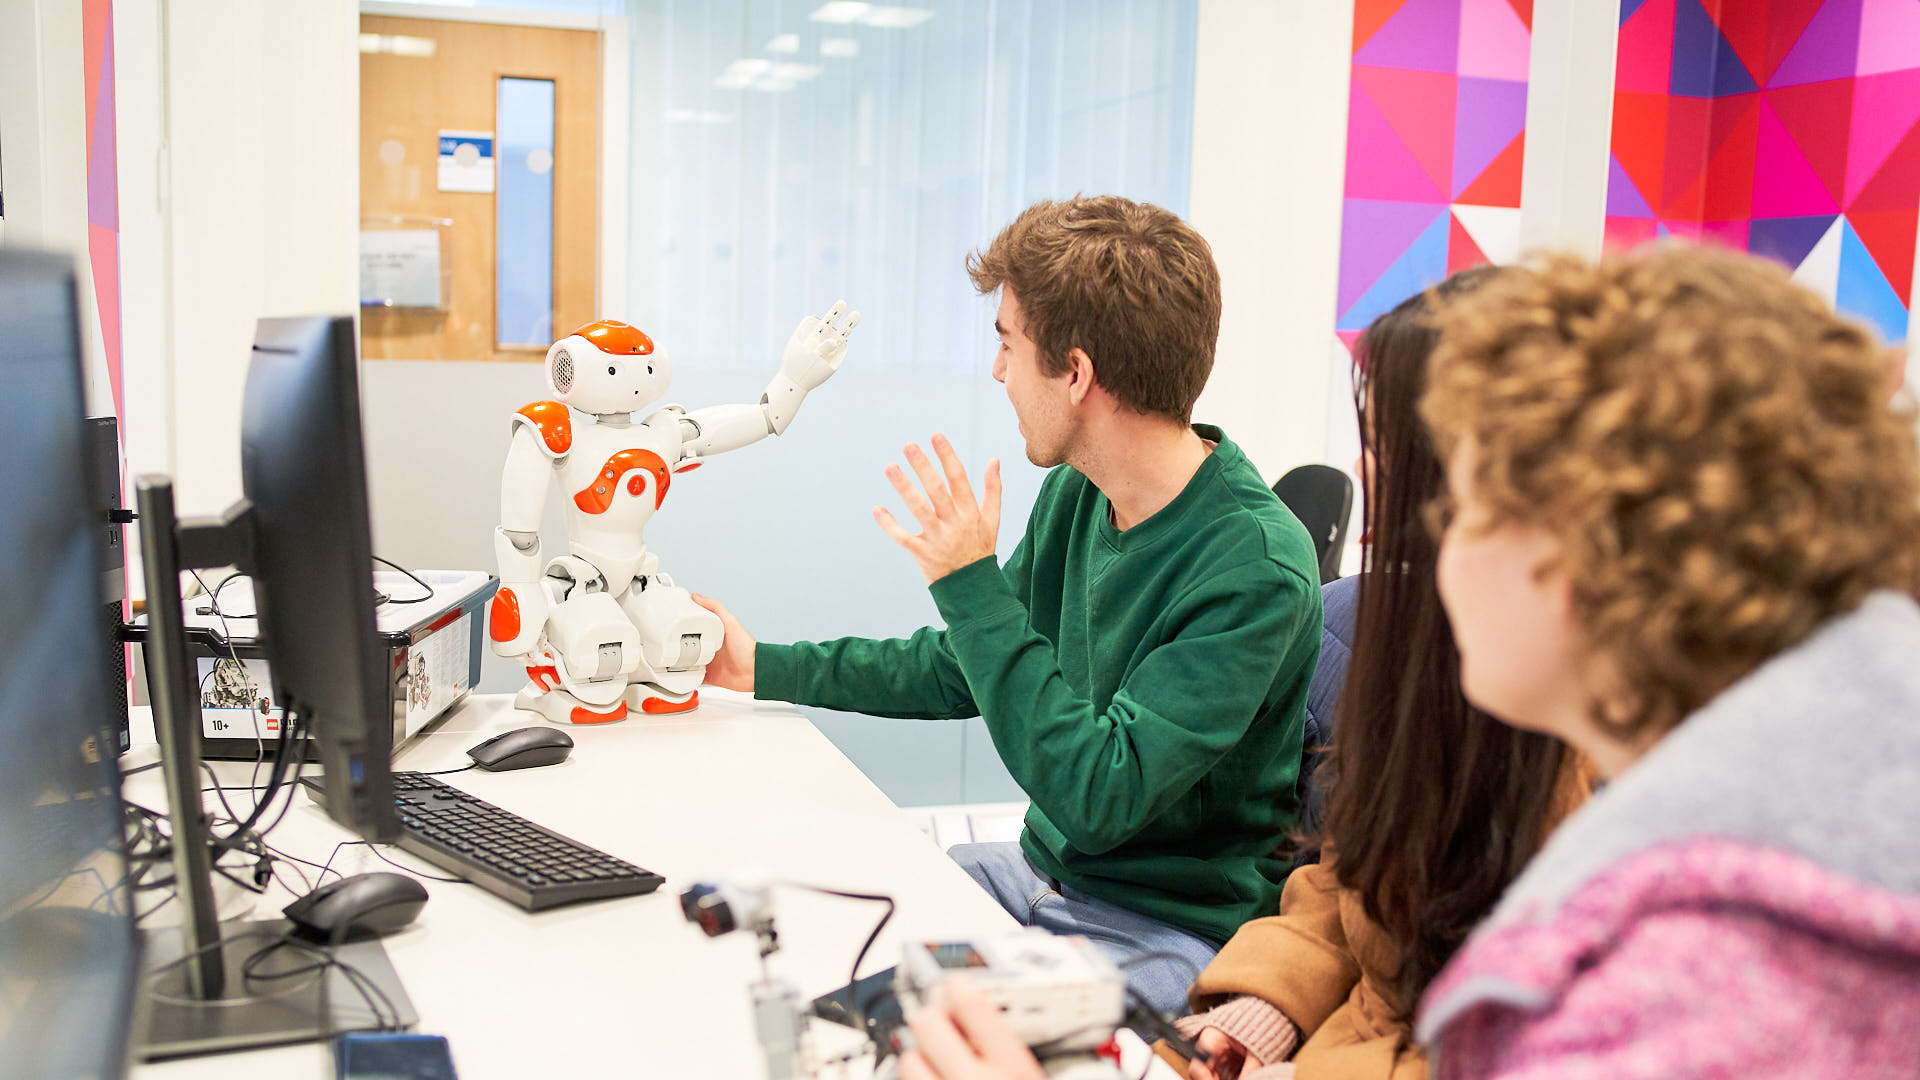 PhD students working with robots